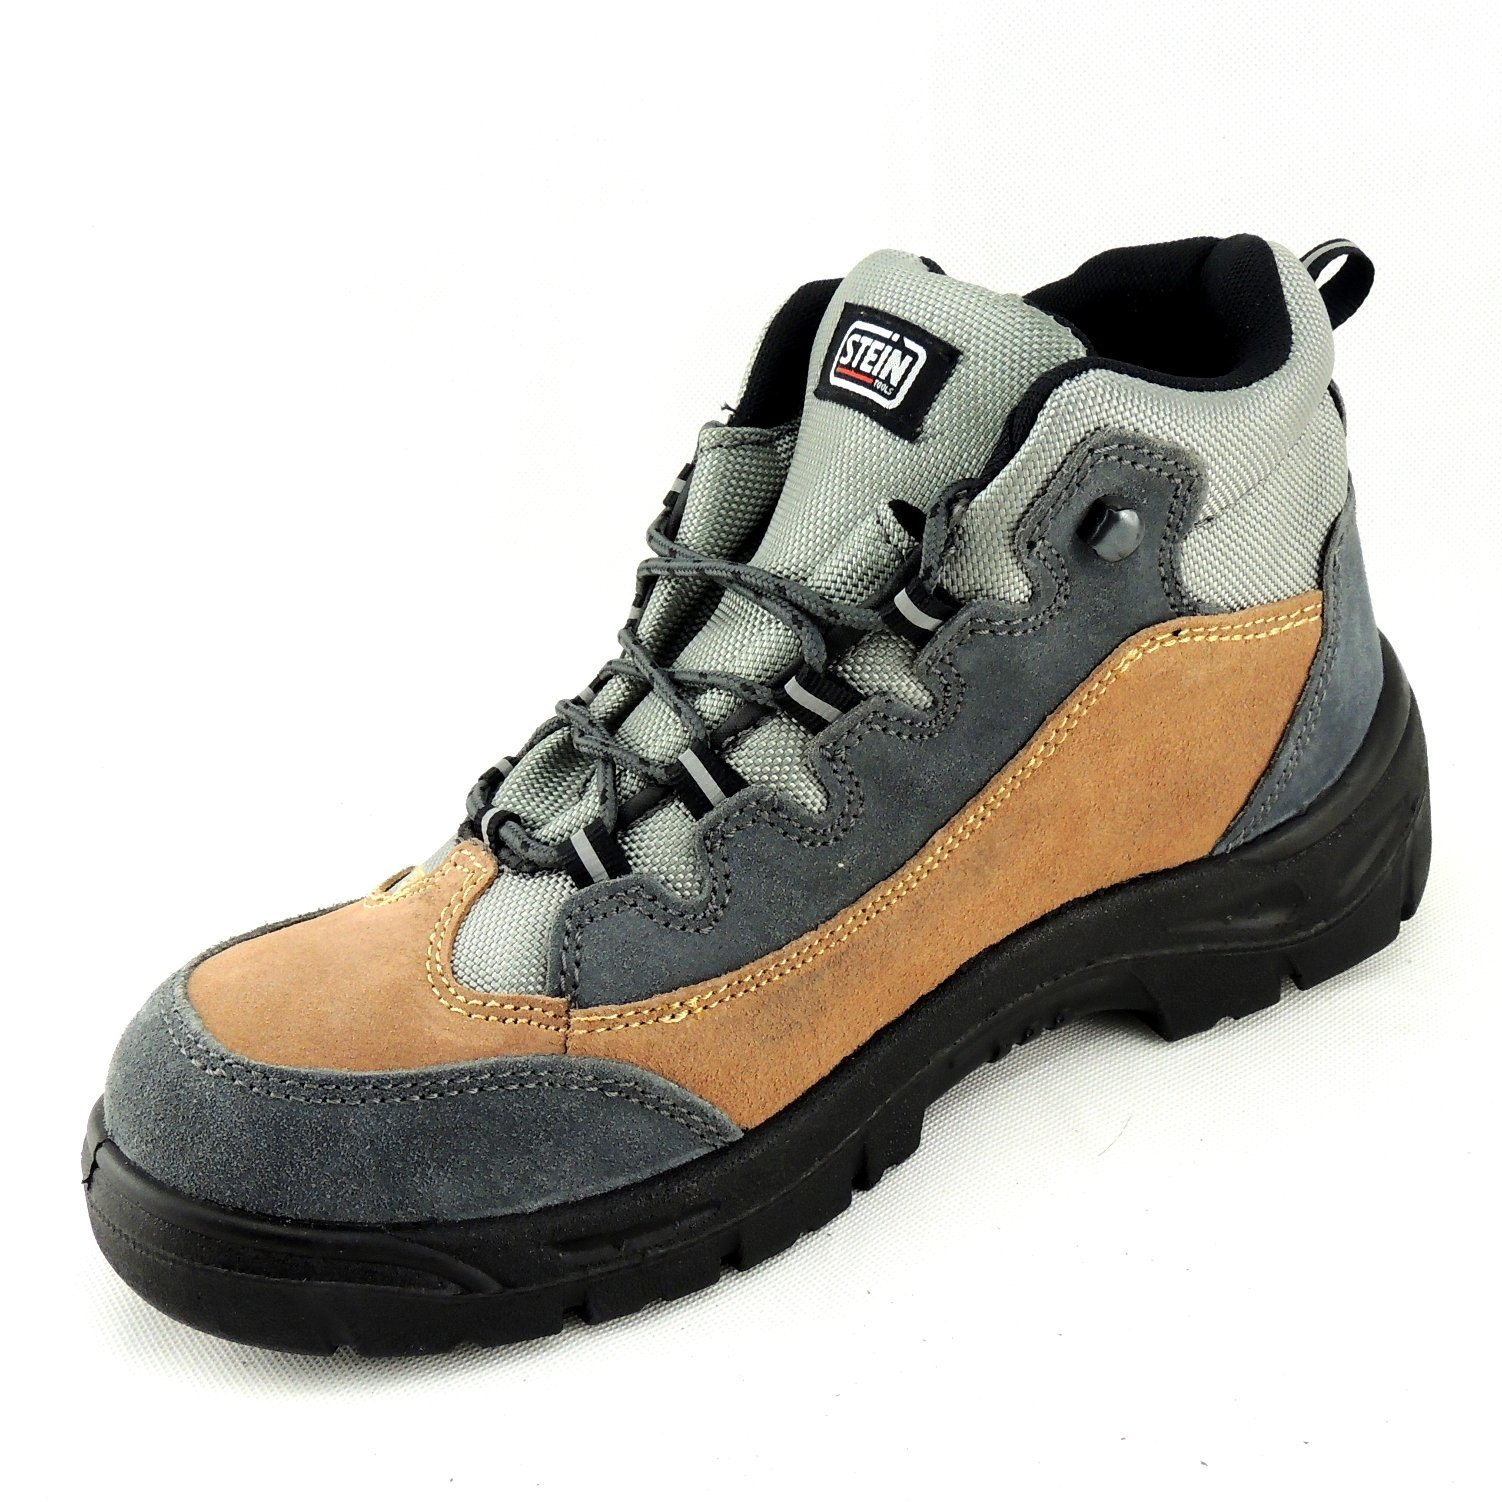 Economic Split Leather PU Sole Anti-Hit Safety Work Footwear